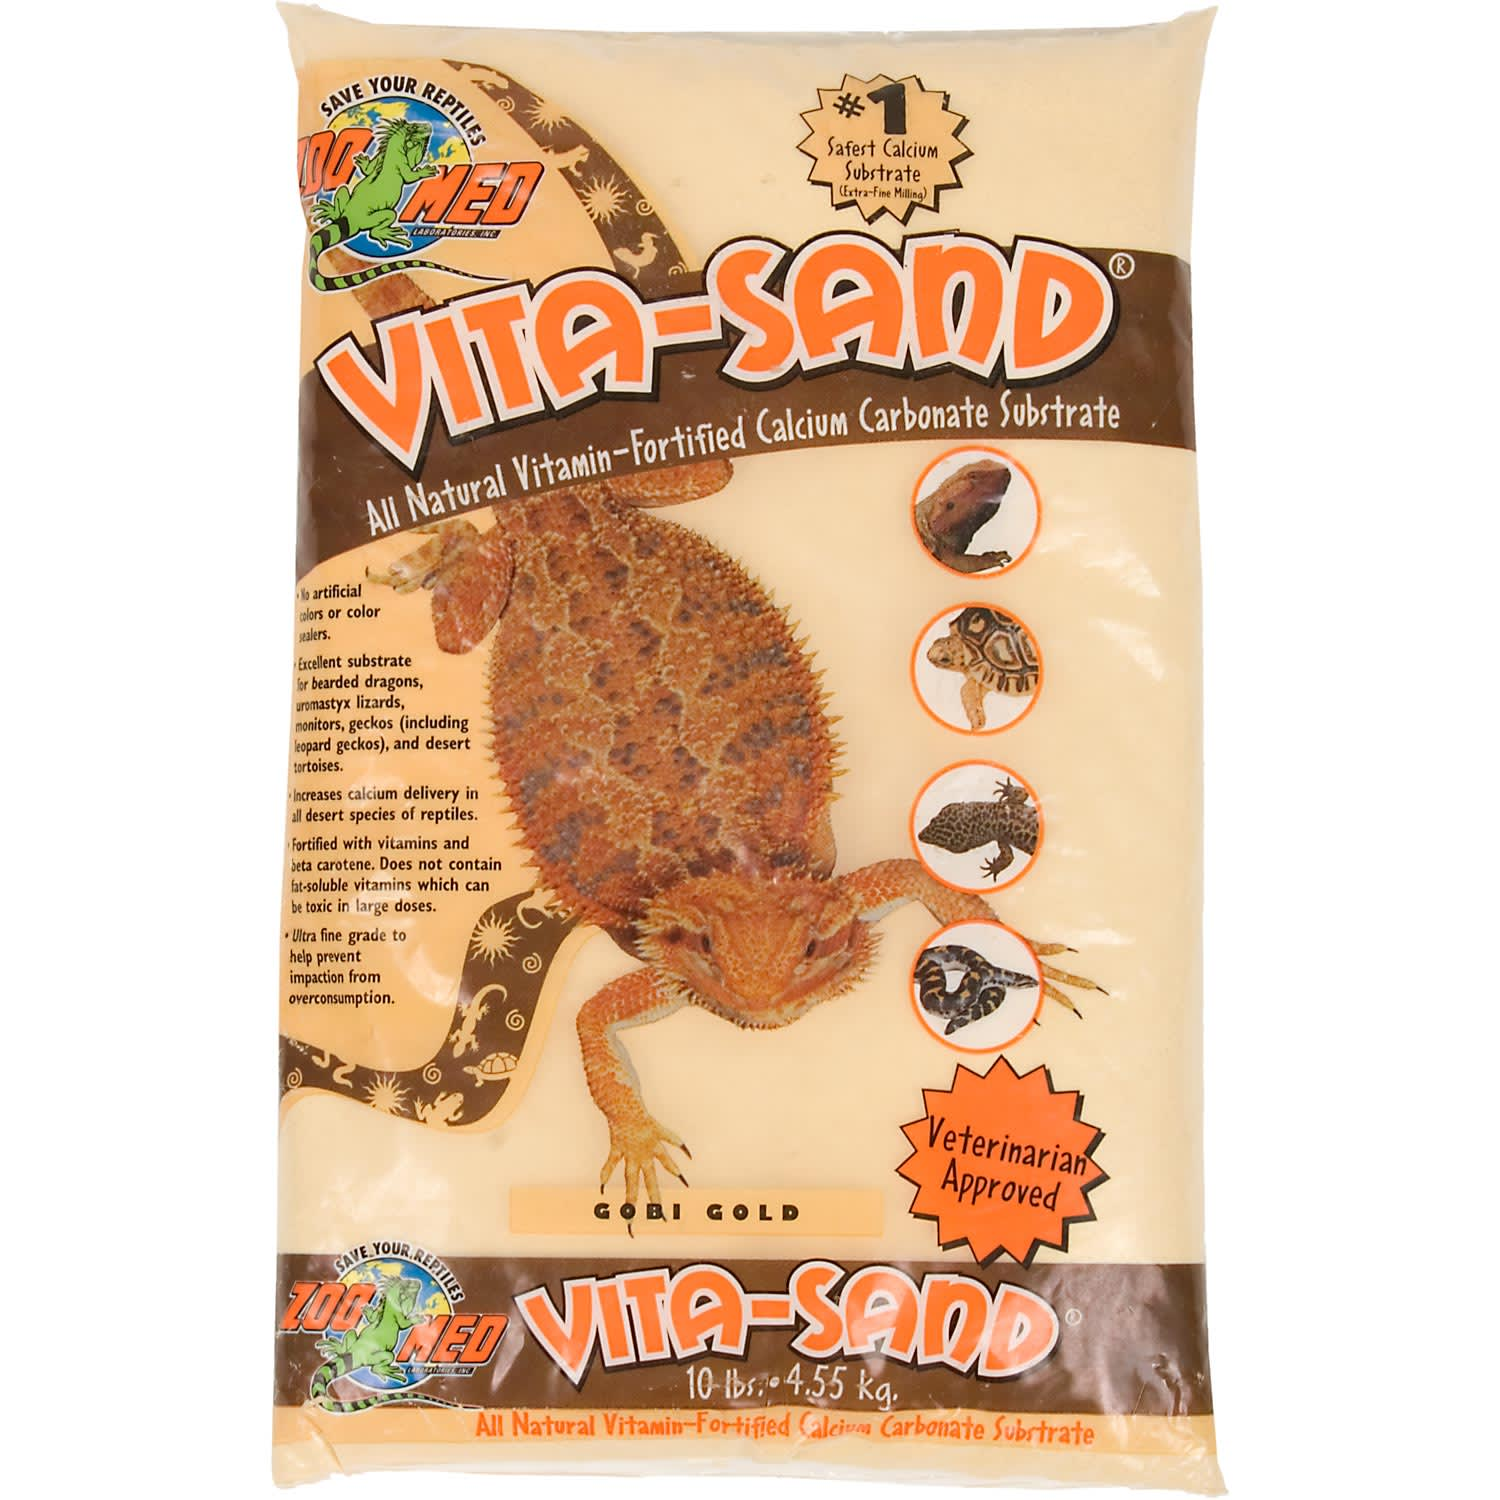 1 All natural vitamin-fortified calcium carbonate substrate increases calcium delivery in desert species of reptiles. Fortified with vitamins and beta carotene for increased health benefits. Veterinarian approved.